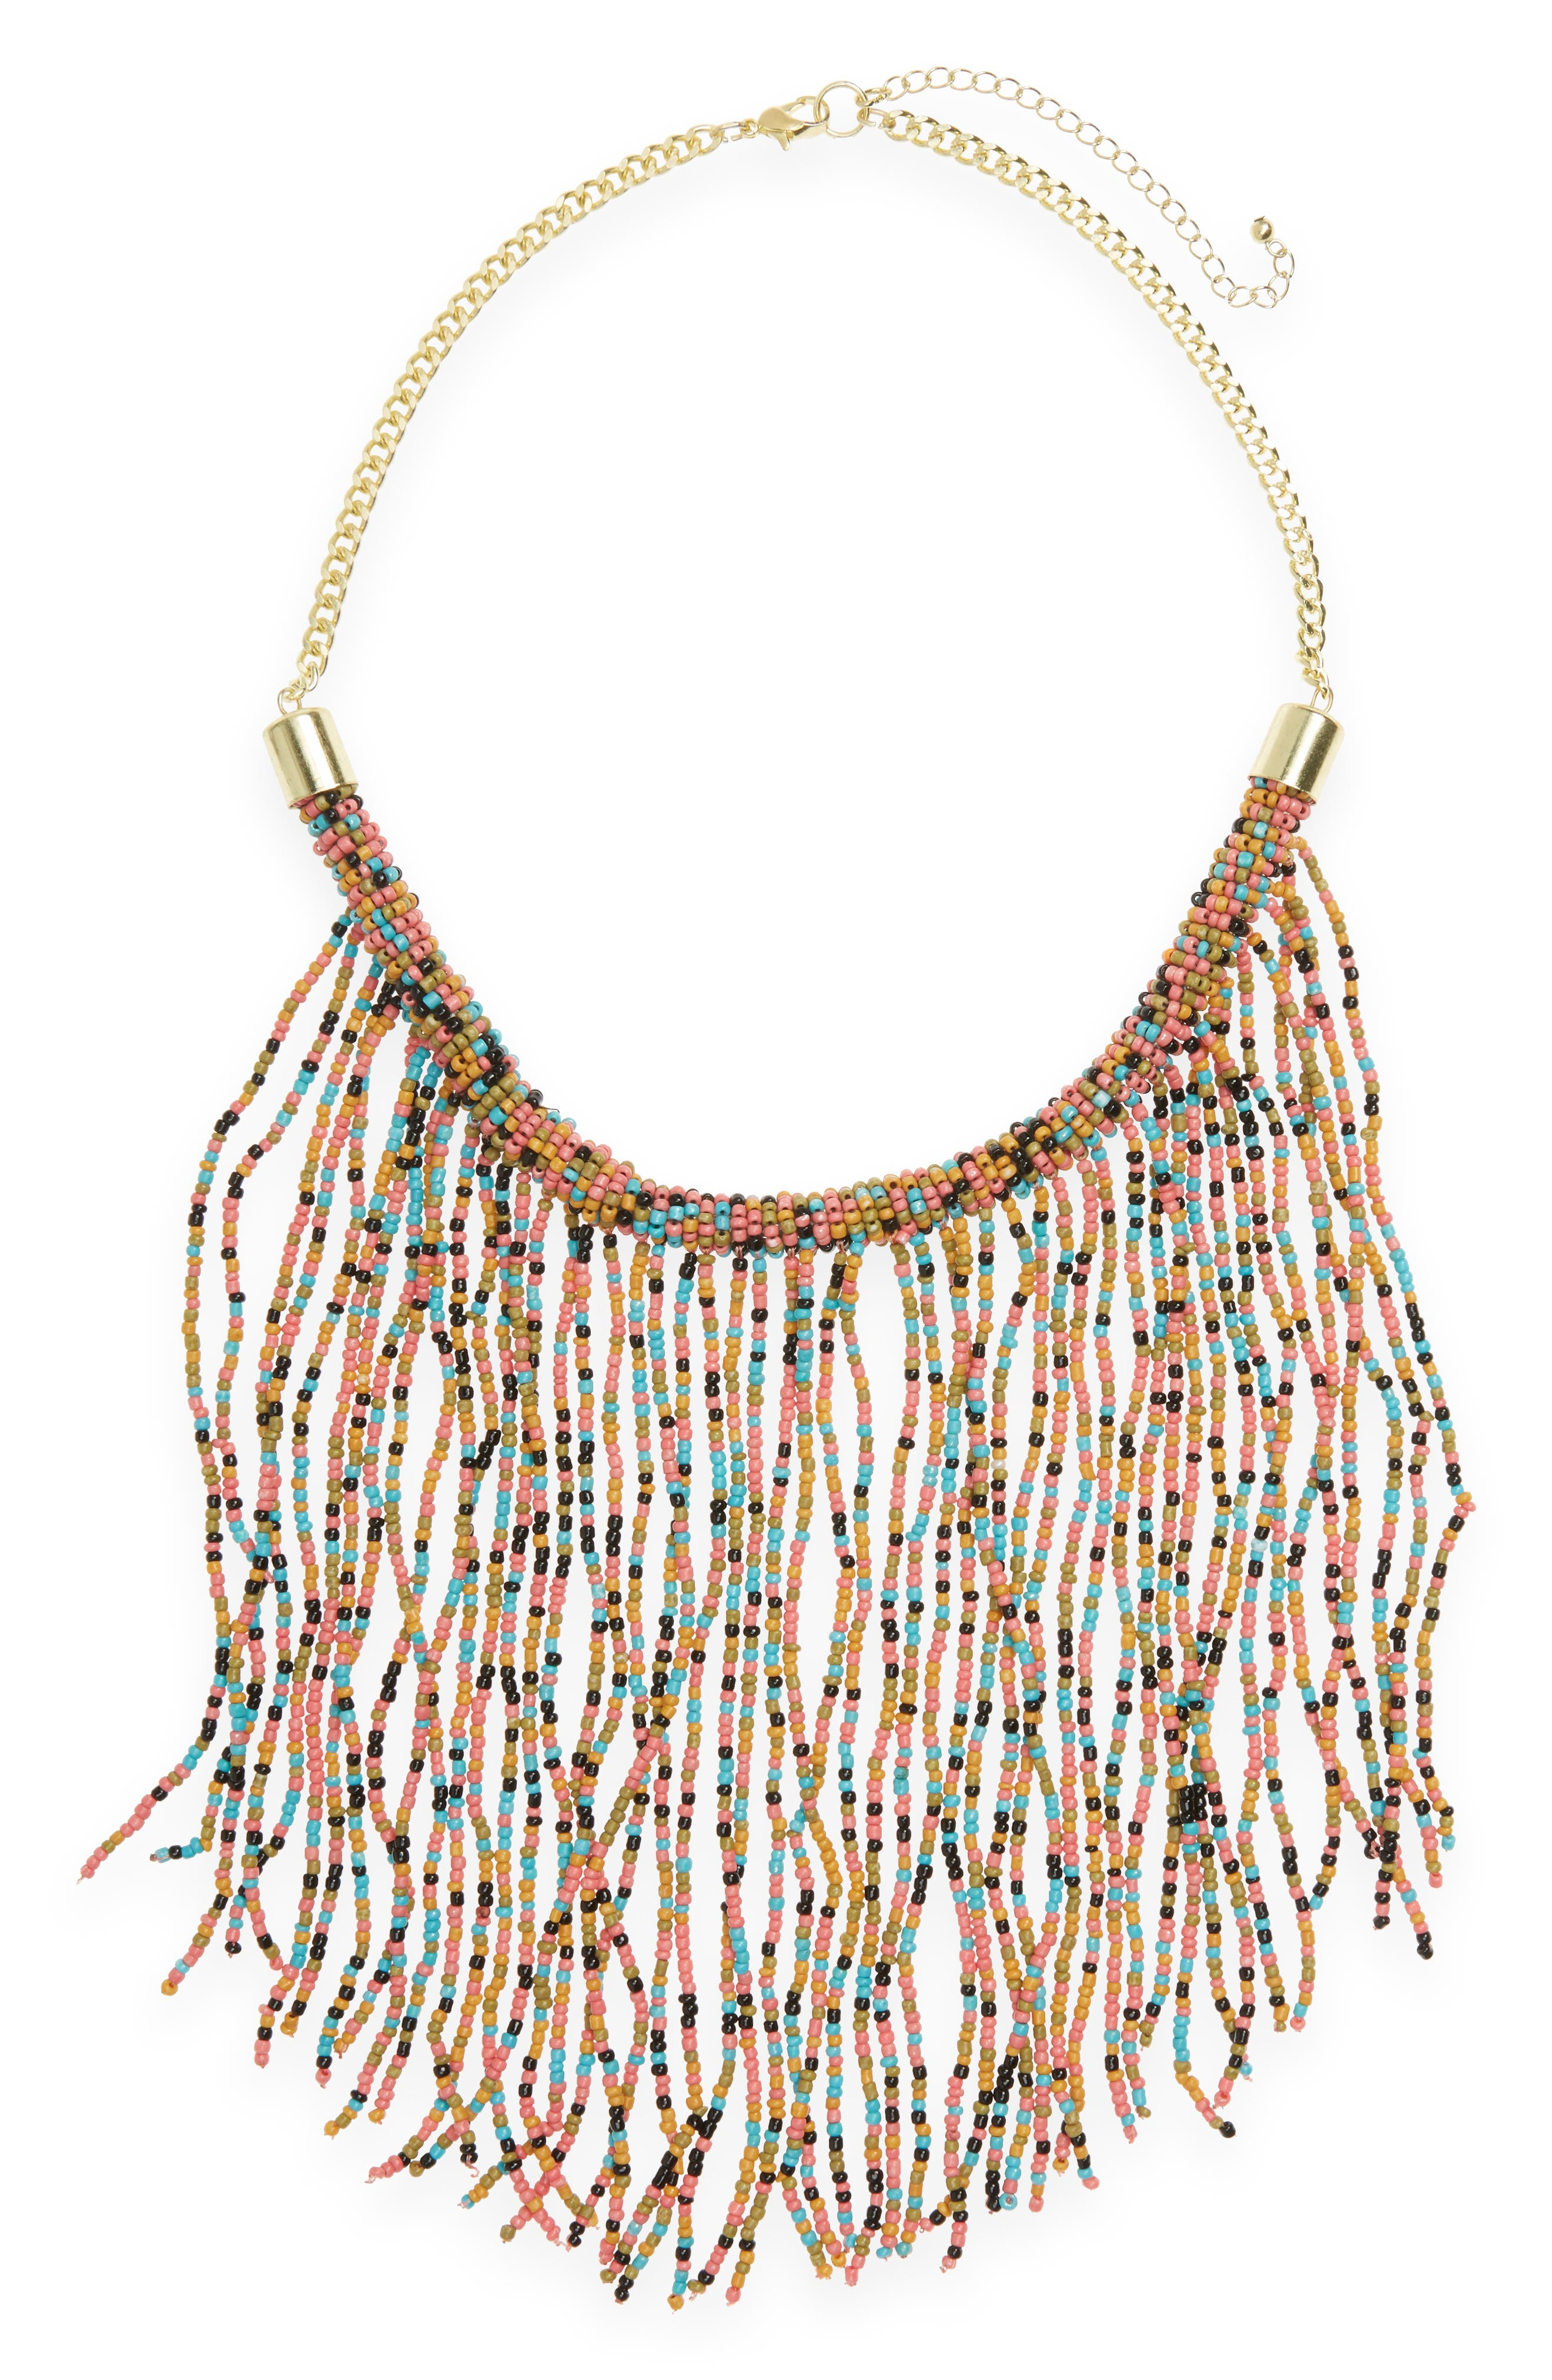 Panacea Beaded Fringe Statement Necklace